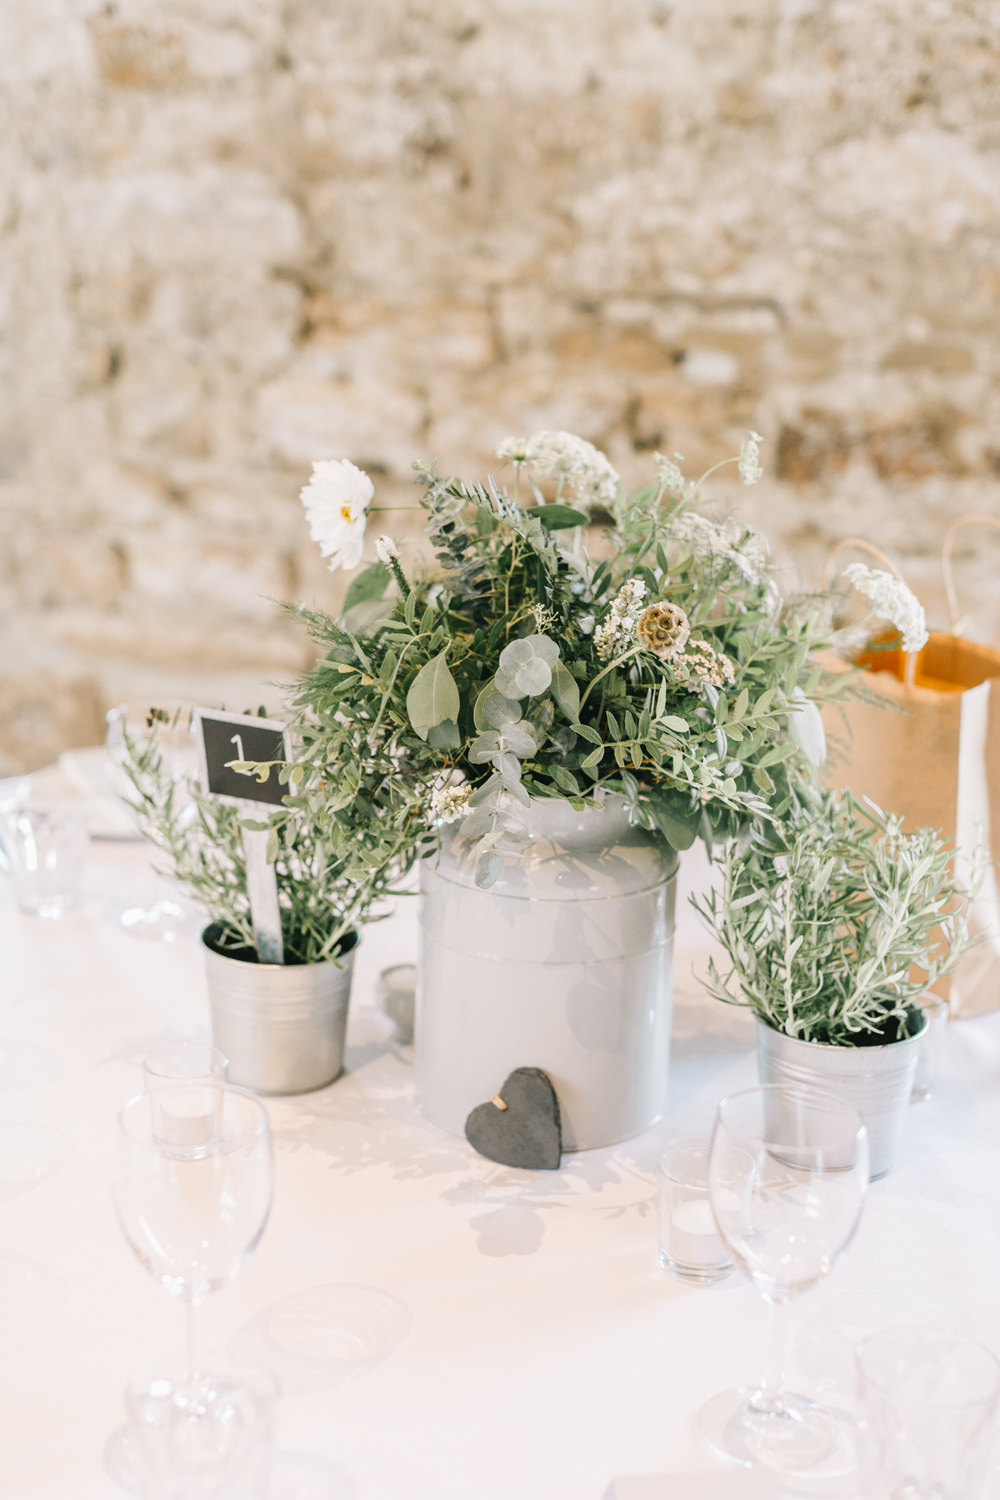 Table Centrepiece Flowers White Greenery Foliage Sweet Peas Fern Pots Healey Barn Wedding Amy Lou Photography